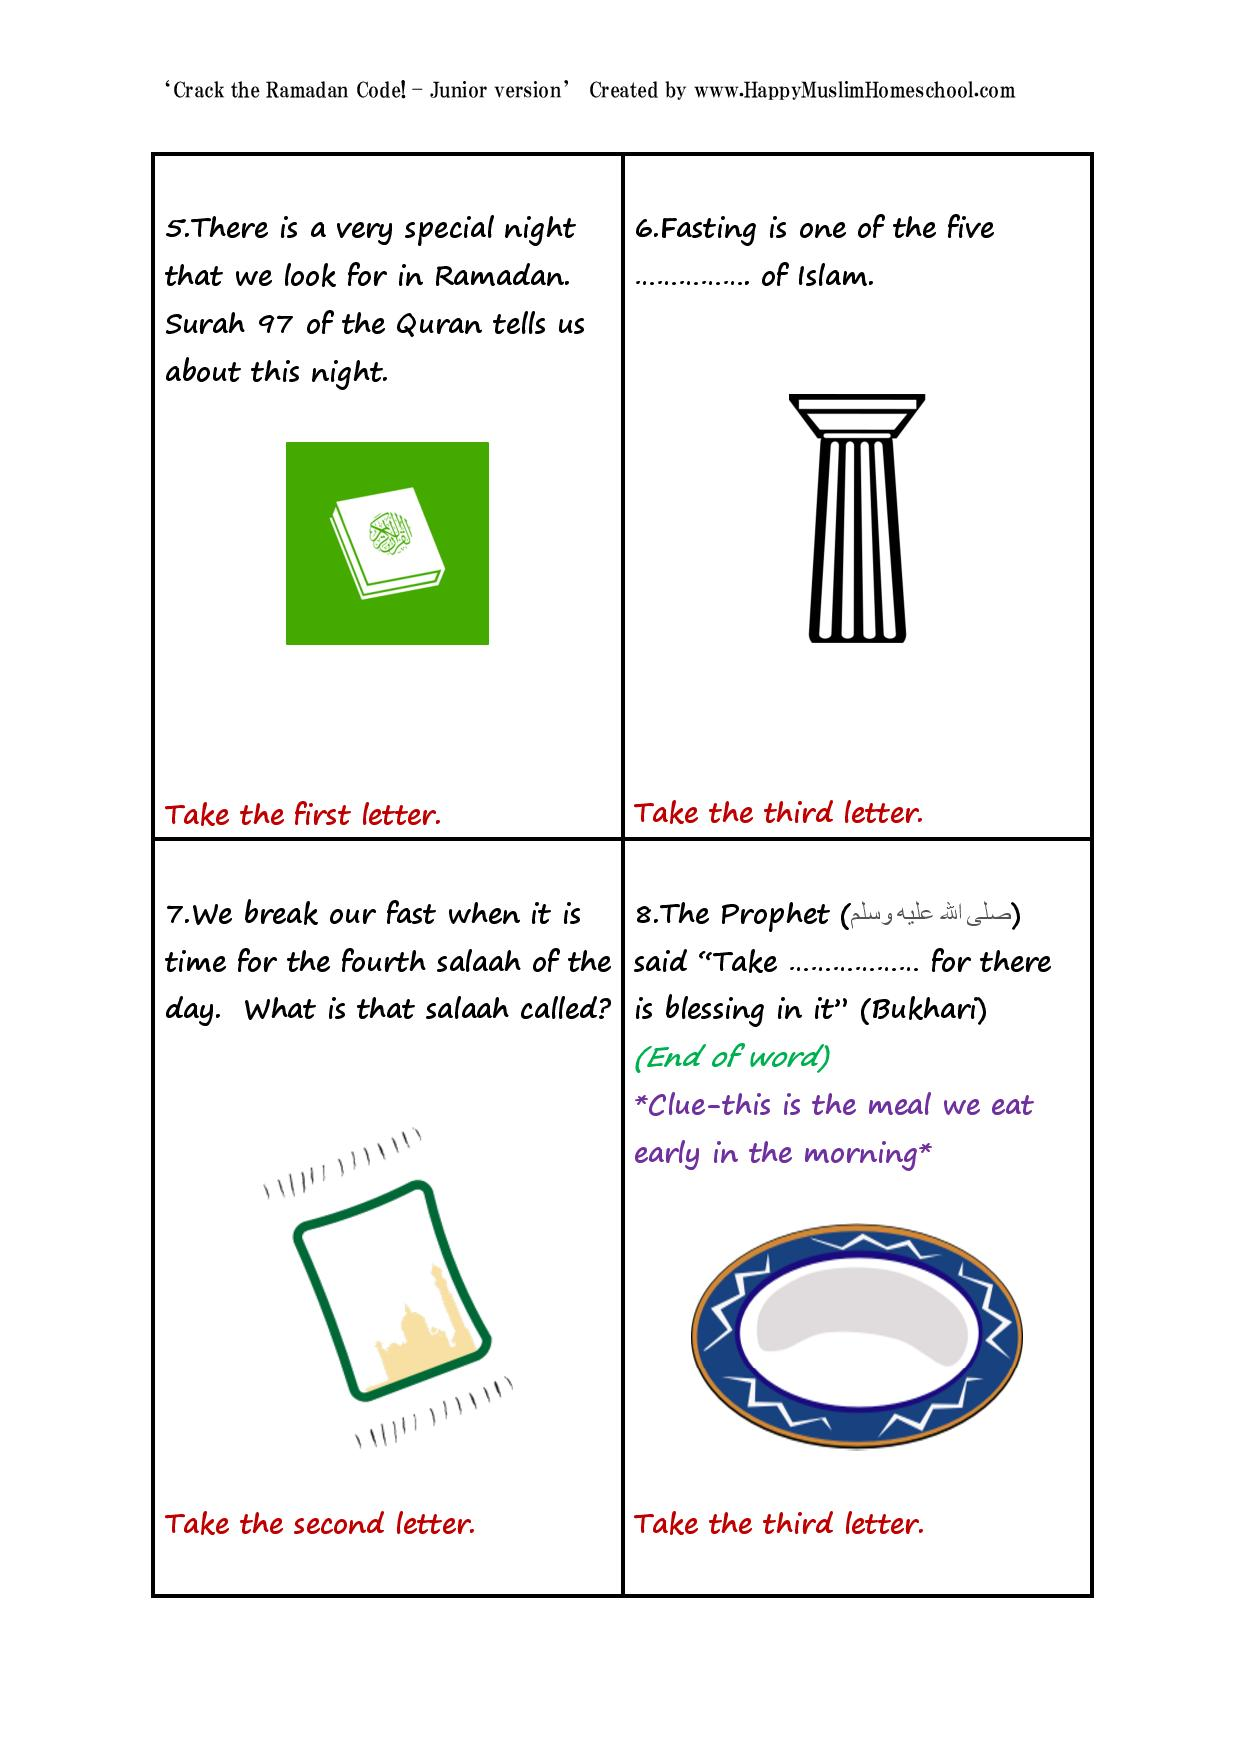 Crack The Ramadan Code Junior Edition